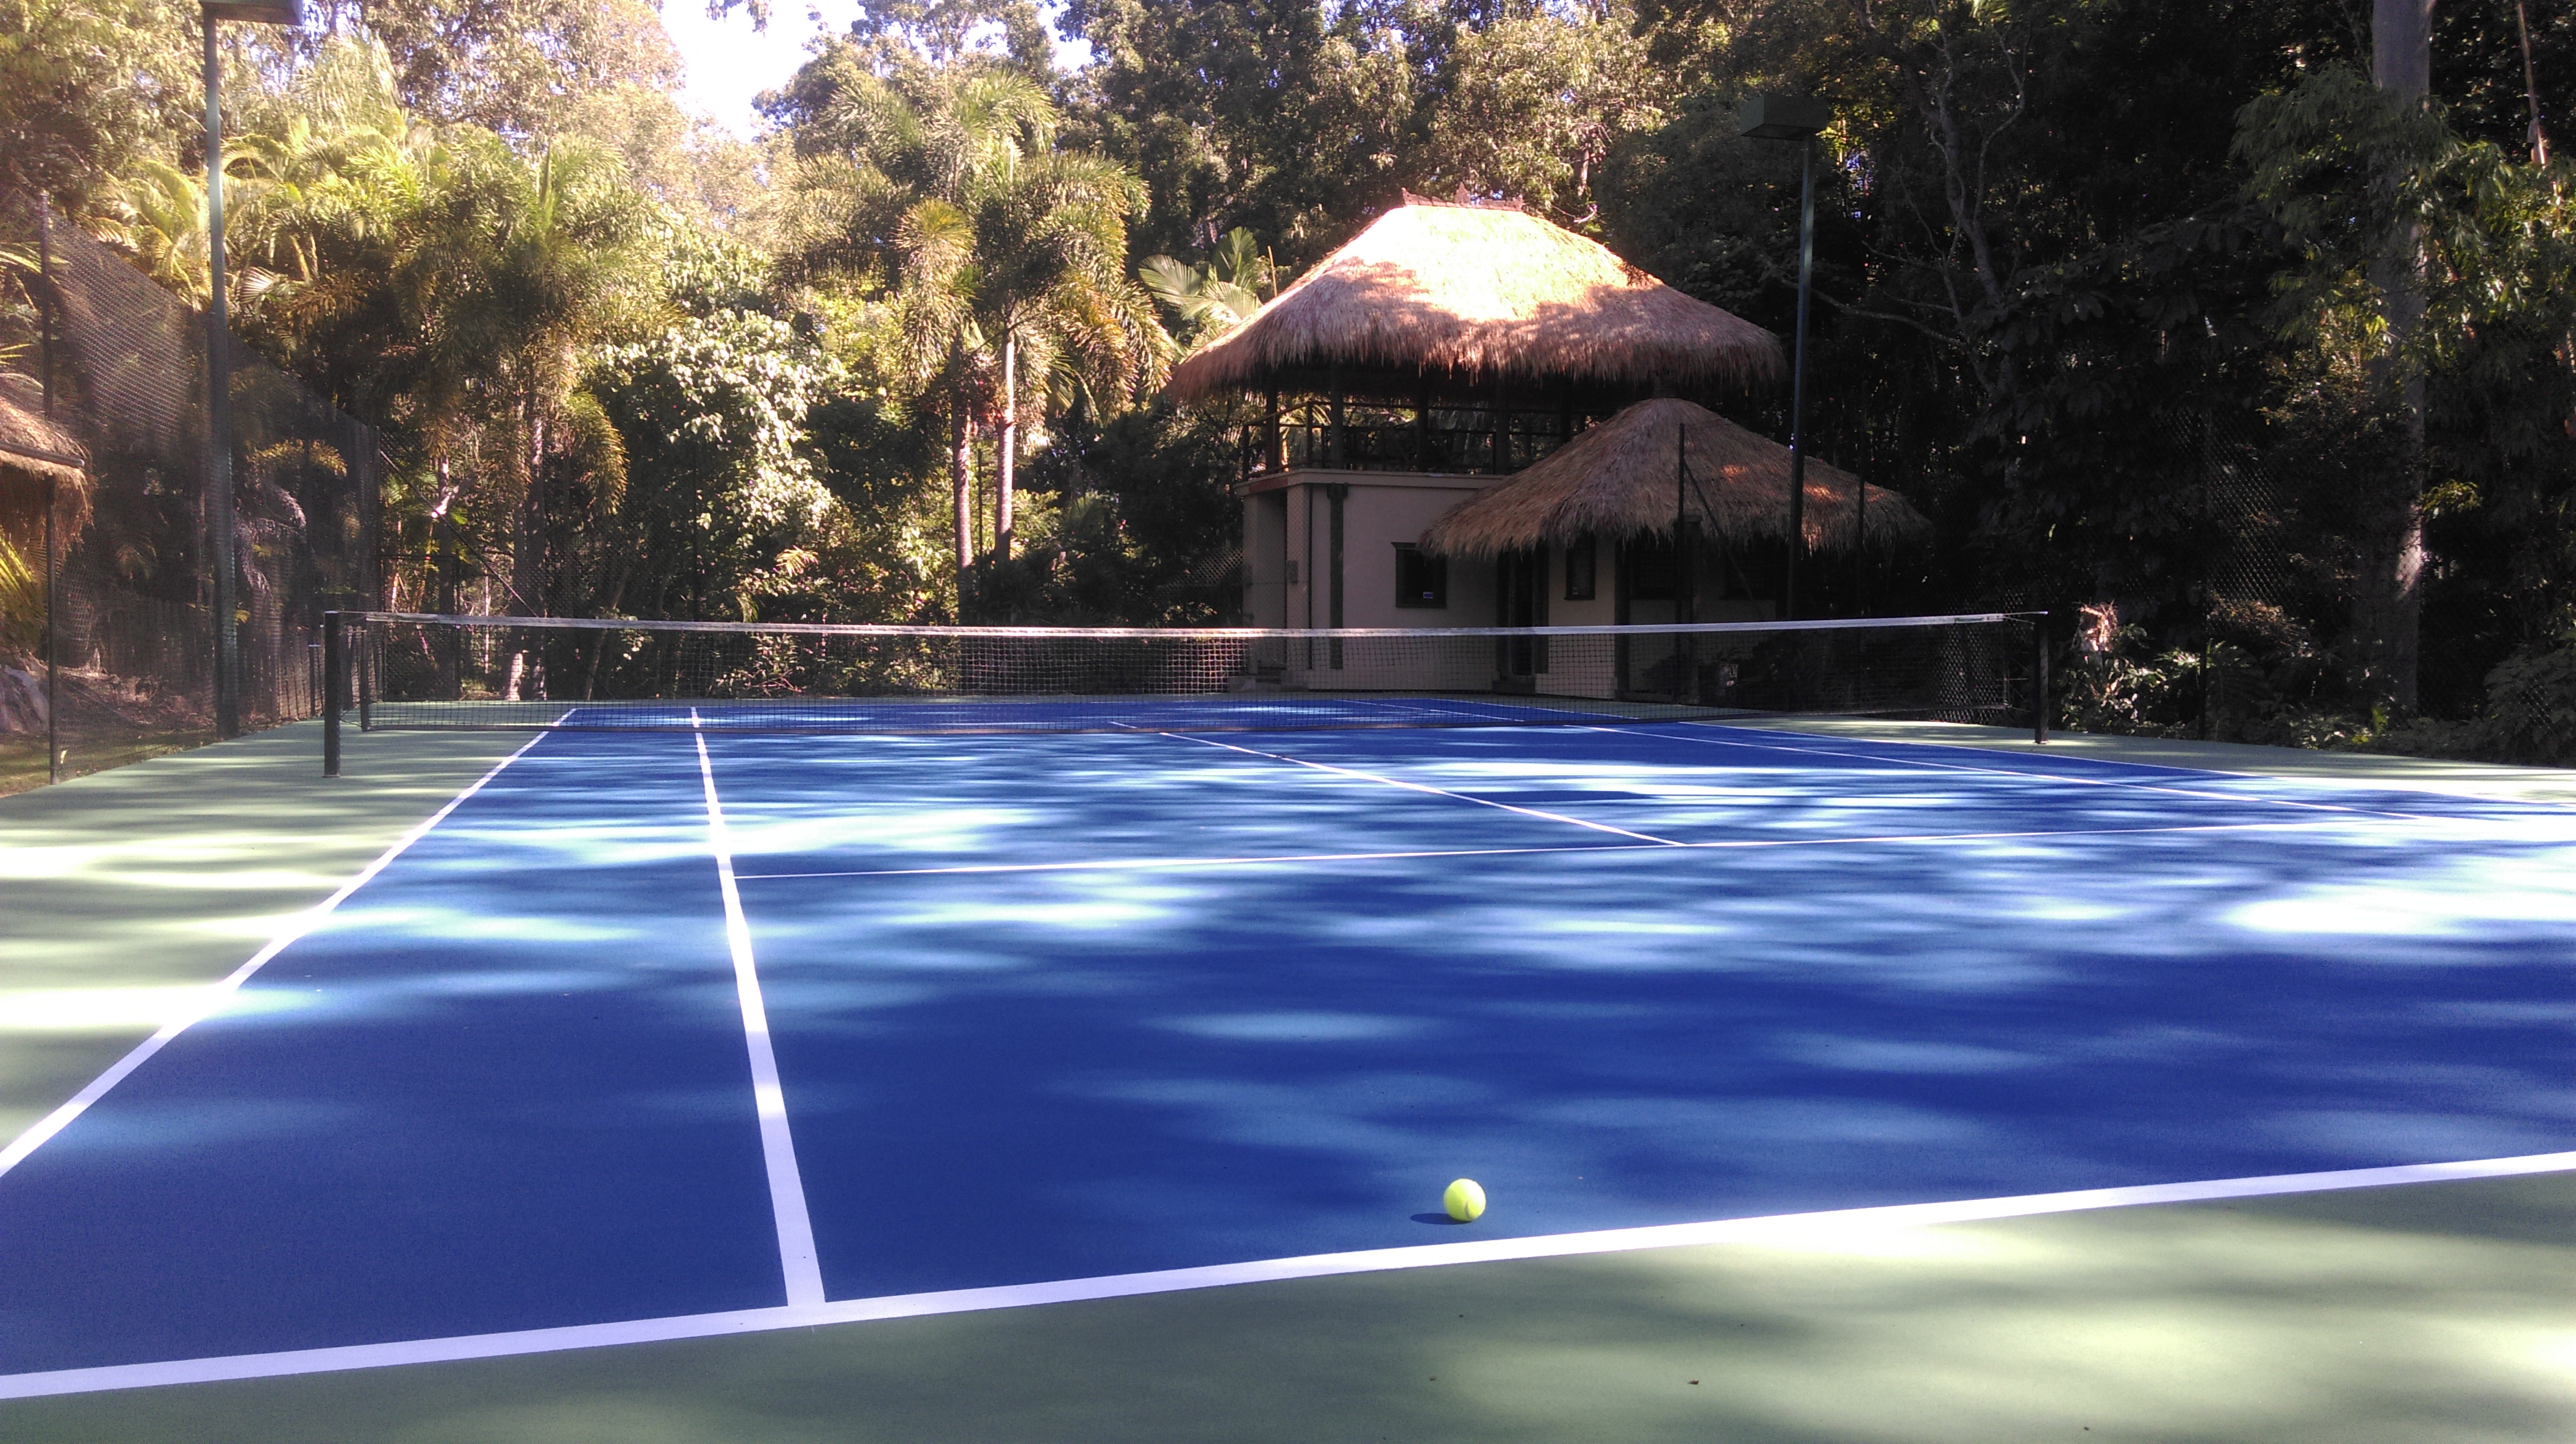 Balinese Pavilion for Tennis